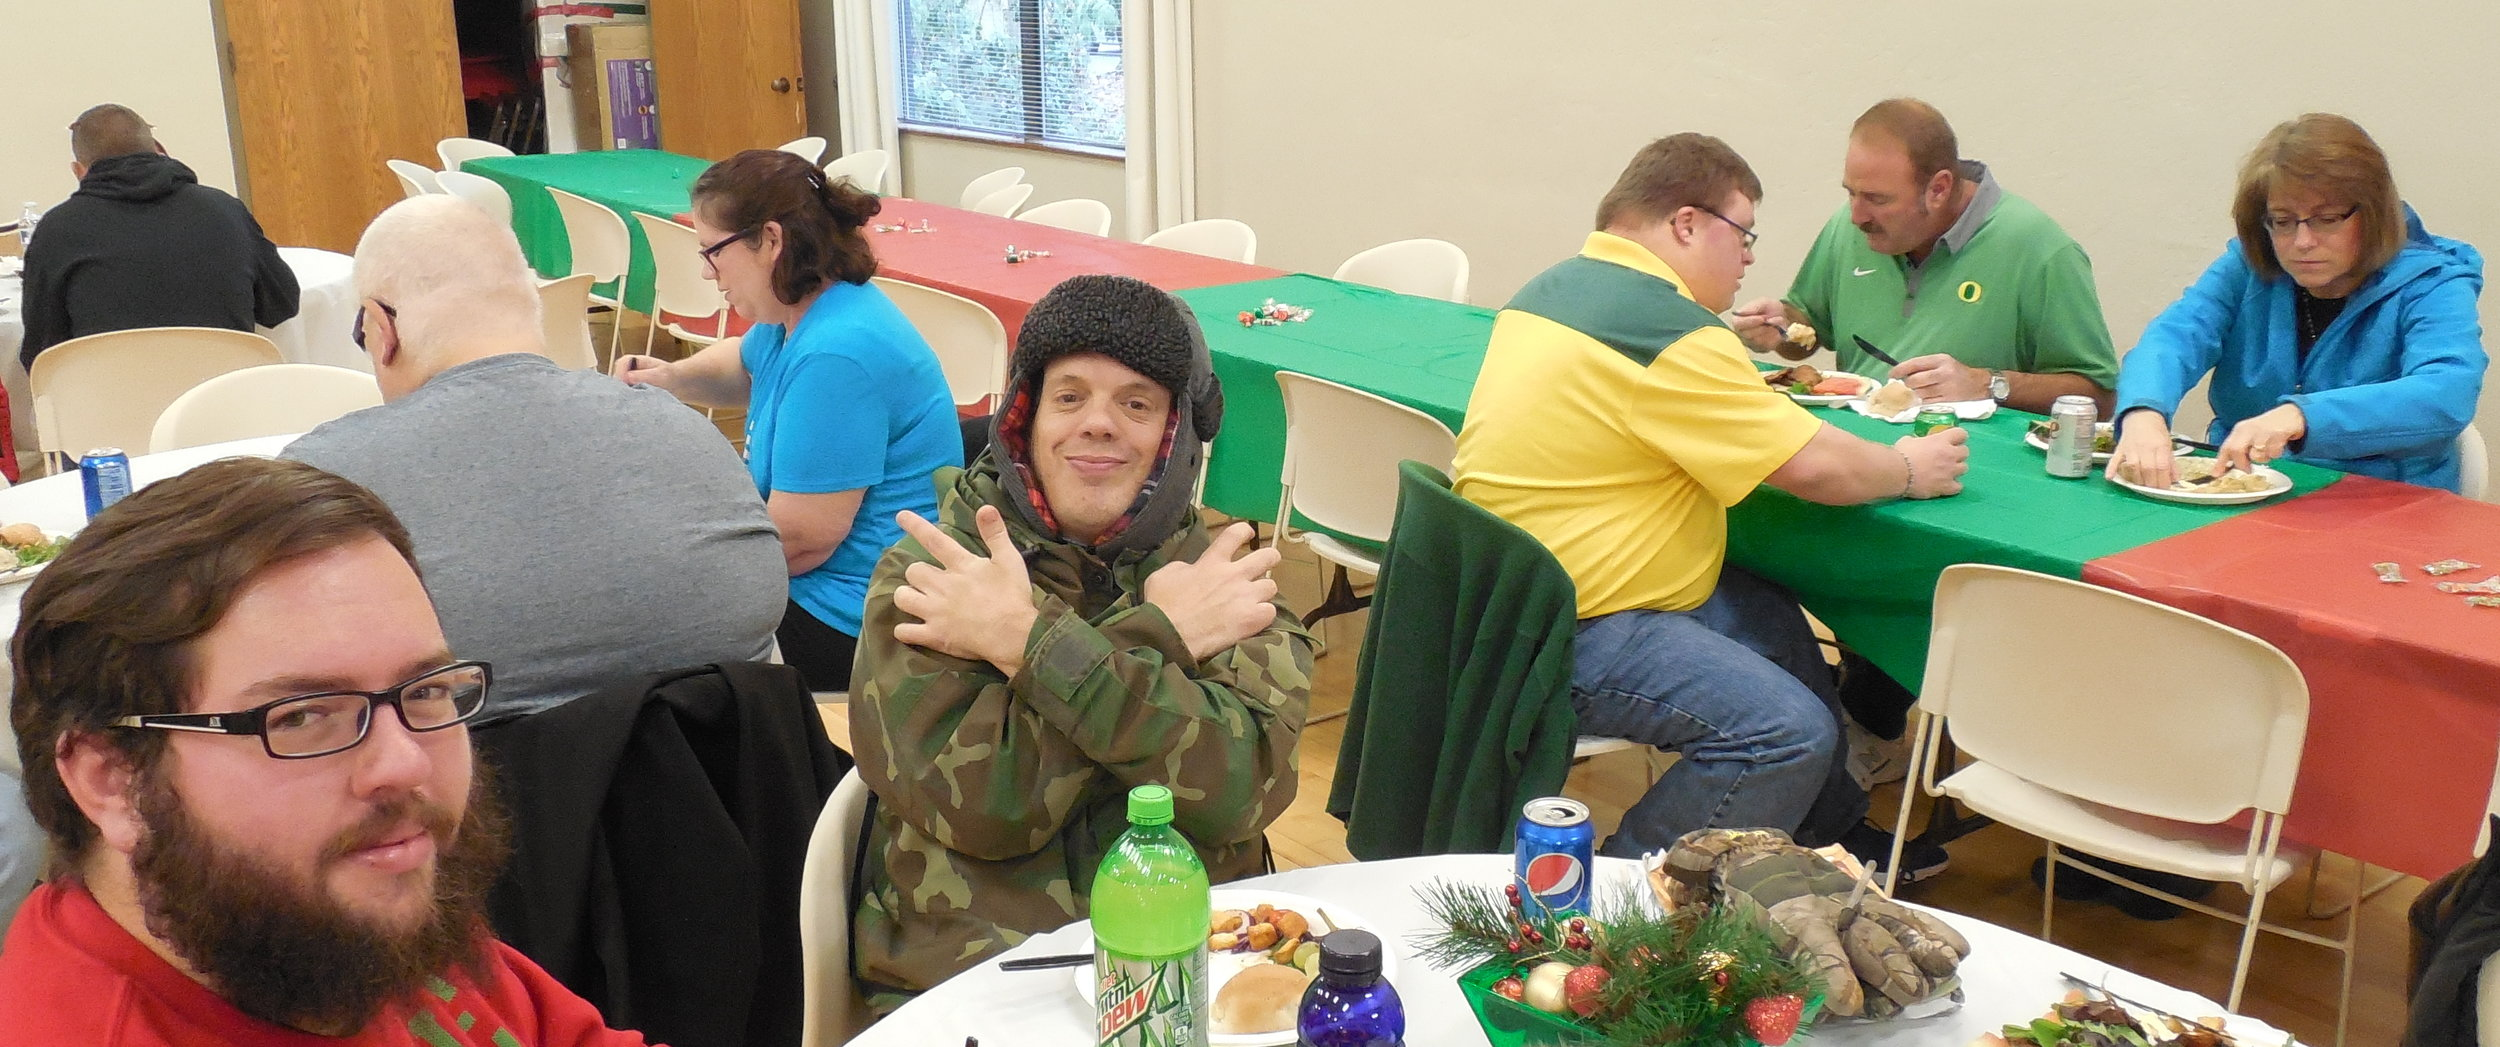 Christmas Party-eating 1.jpg